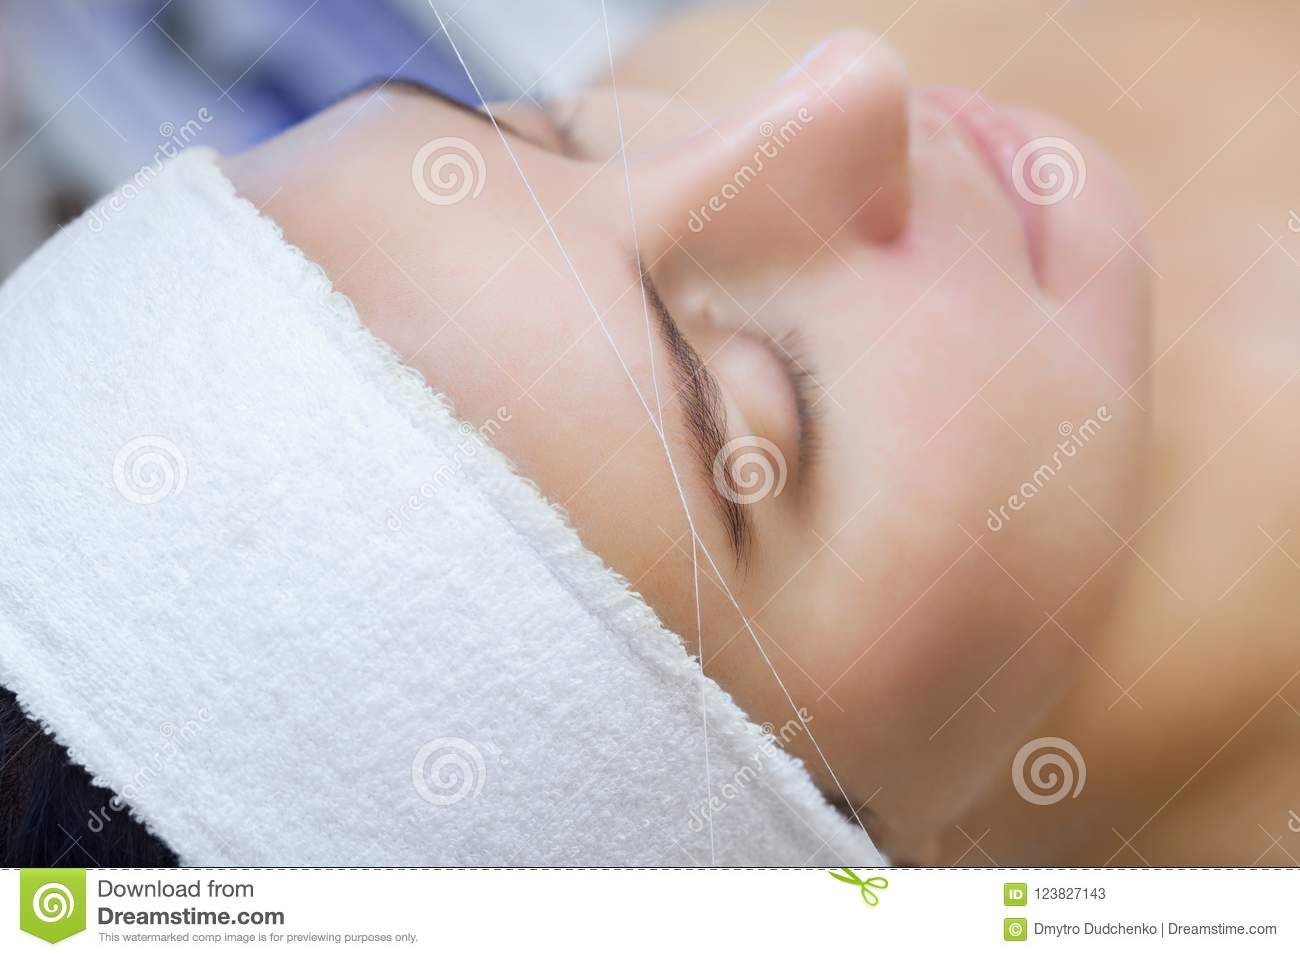 The Make Up Artist Plucks Her Eyebrows With A Thread Close Up Stock